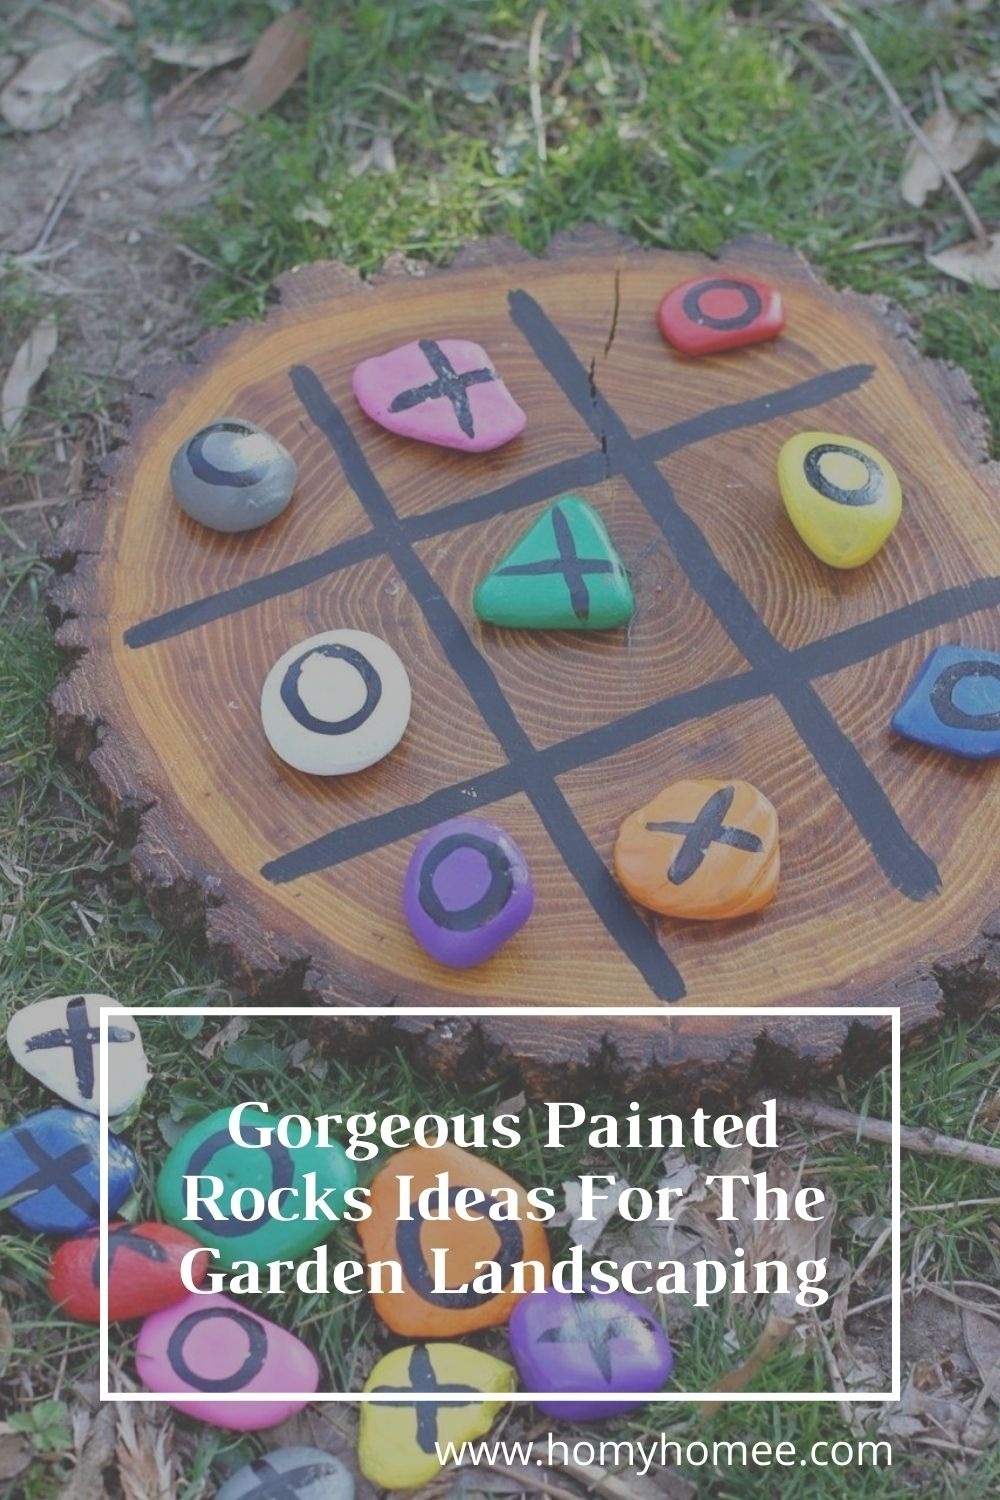 Gorgeous Painted Rocks Ideas For The Garden Landscaping